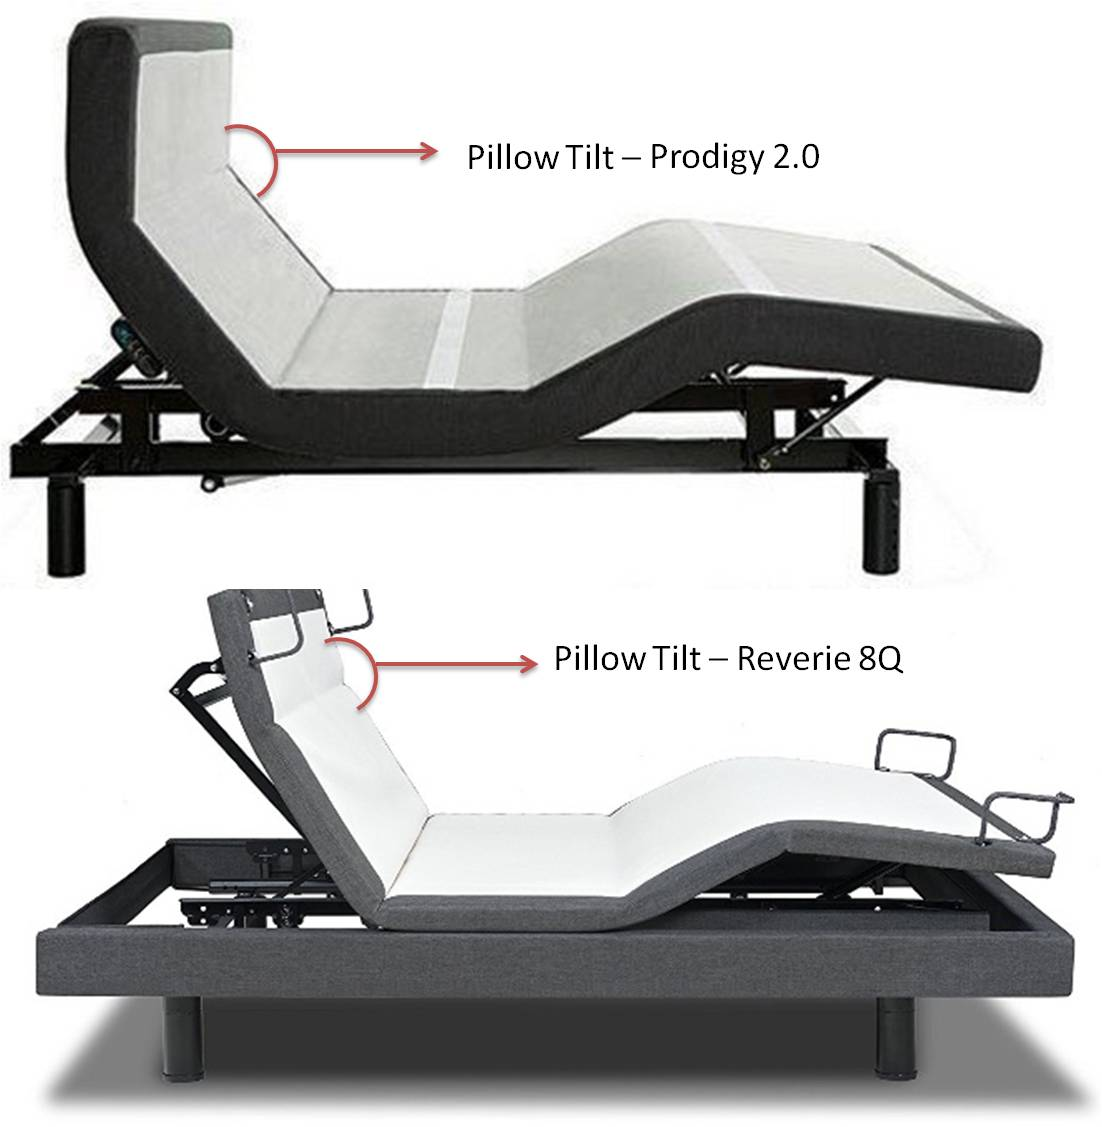 Pillow Tilt Adjustable Beds Prodigy-2.0 Vs Reverie-8Q